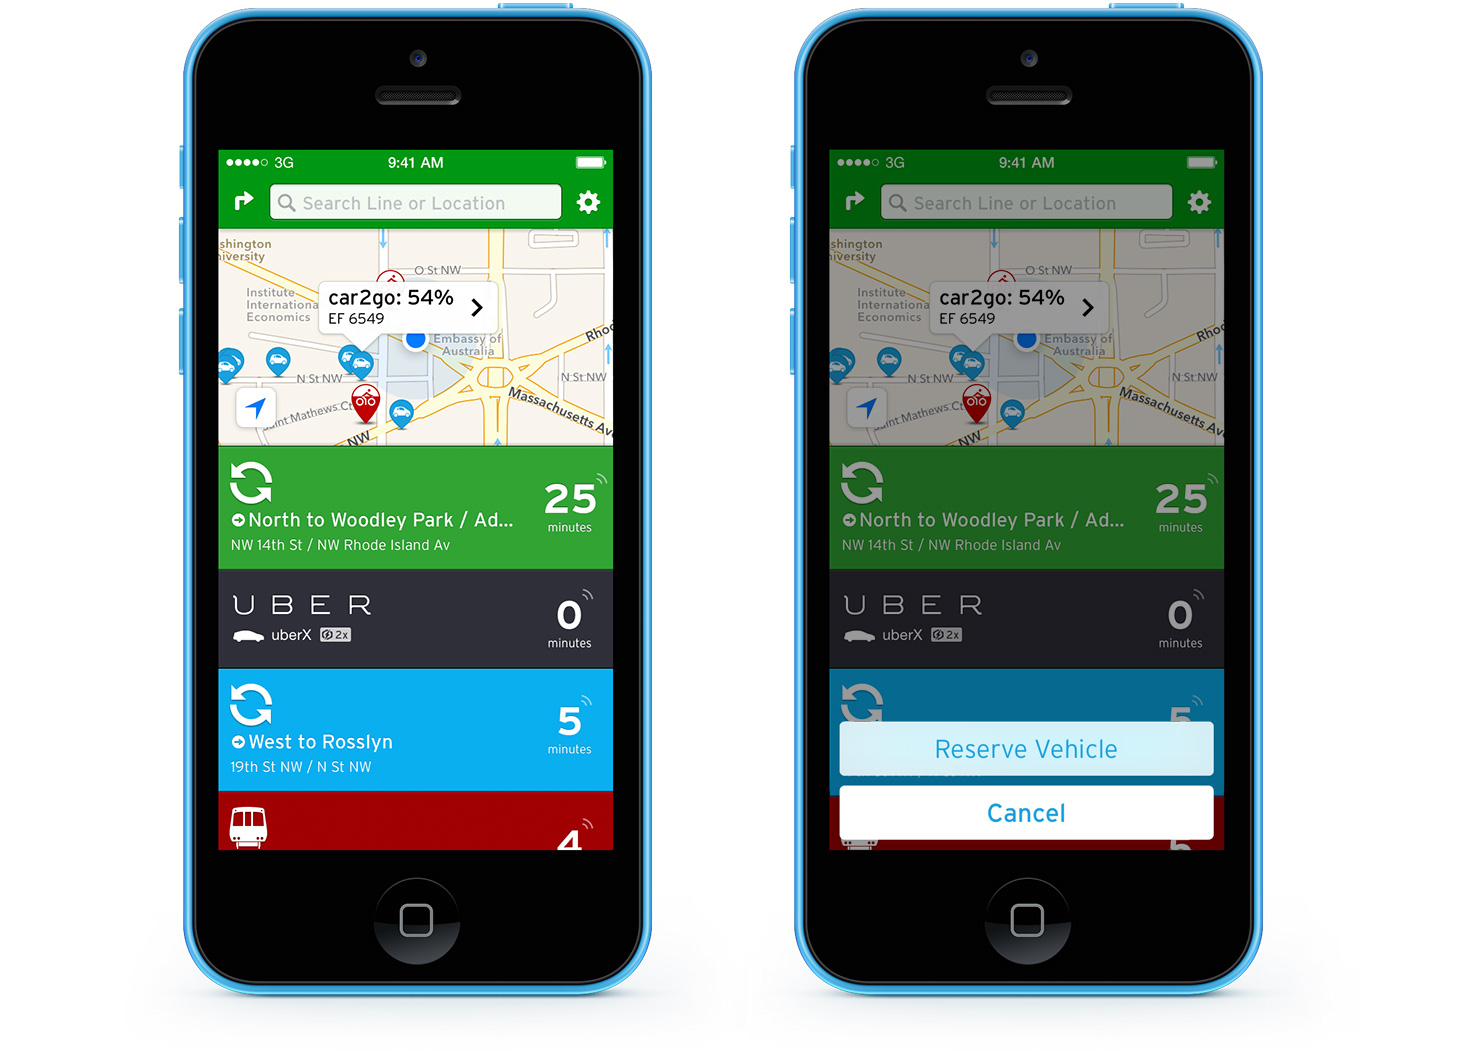 Transit App with Car2go integration